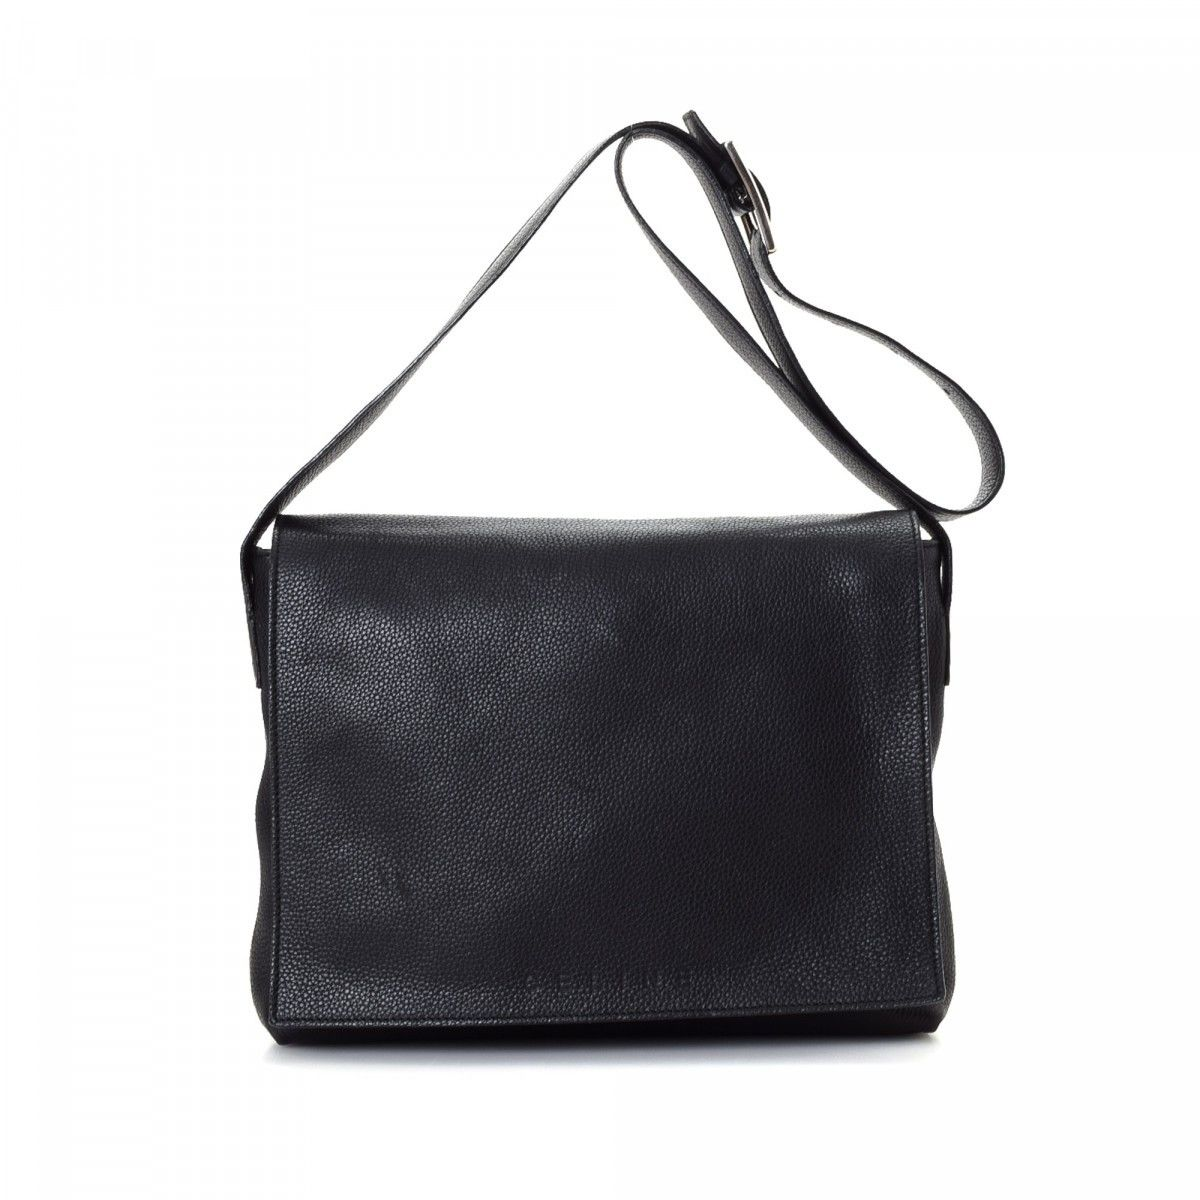 Clearance Visit Free Shipping Choice Pre-owned - Leather Celine qbh7zY0g5p